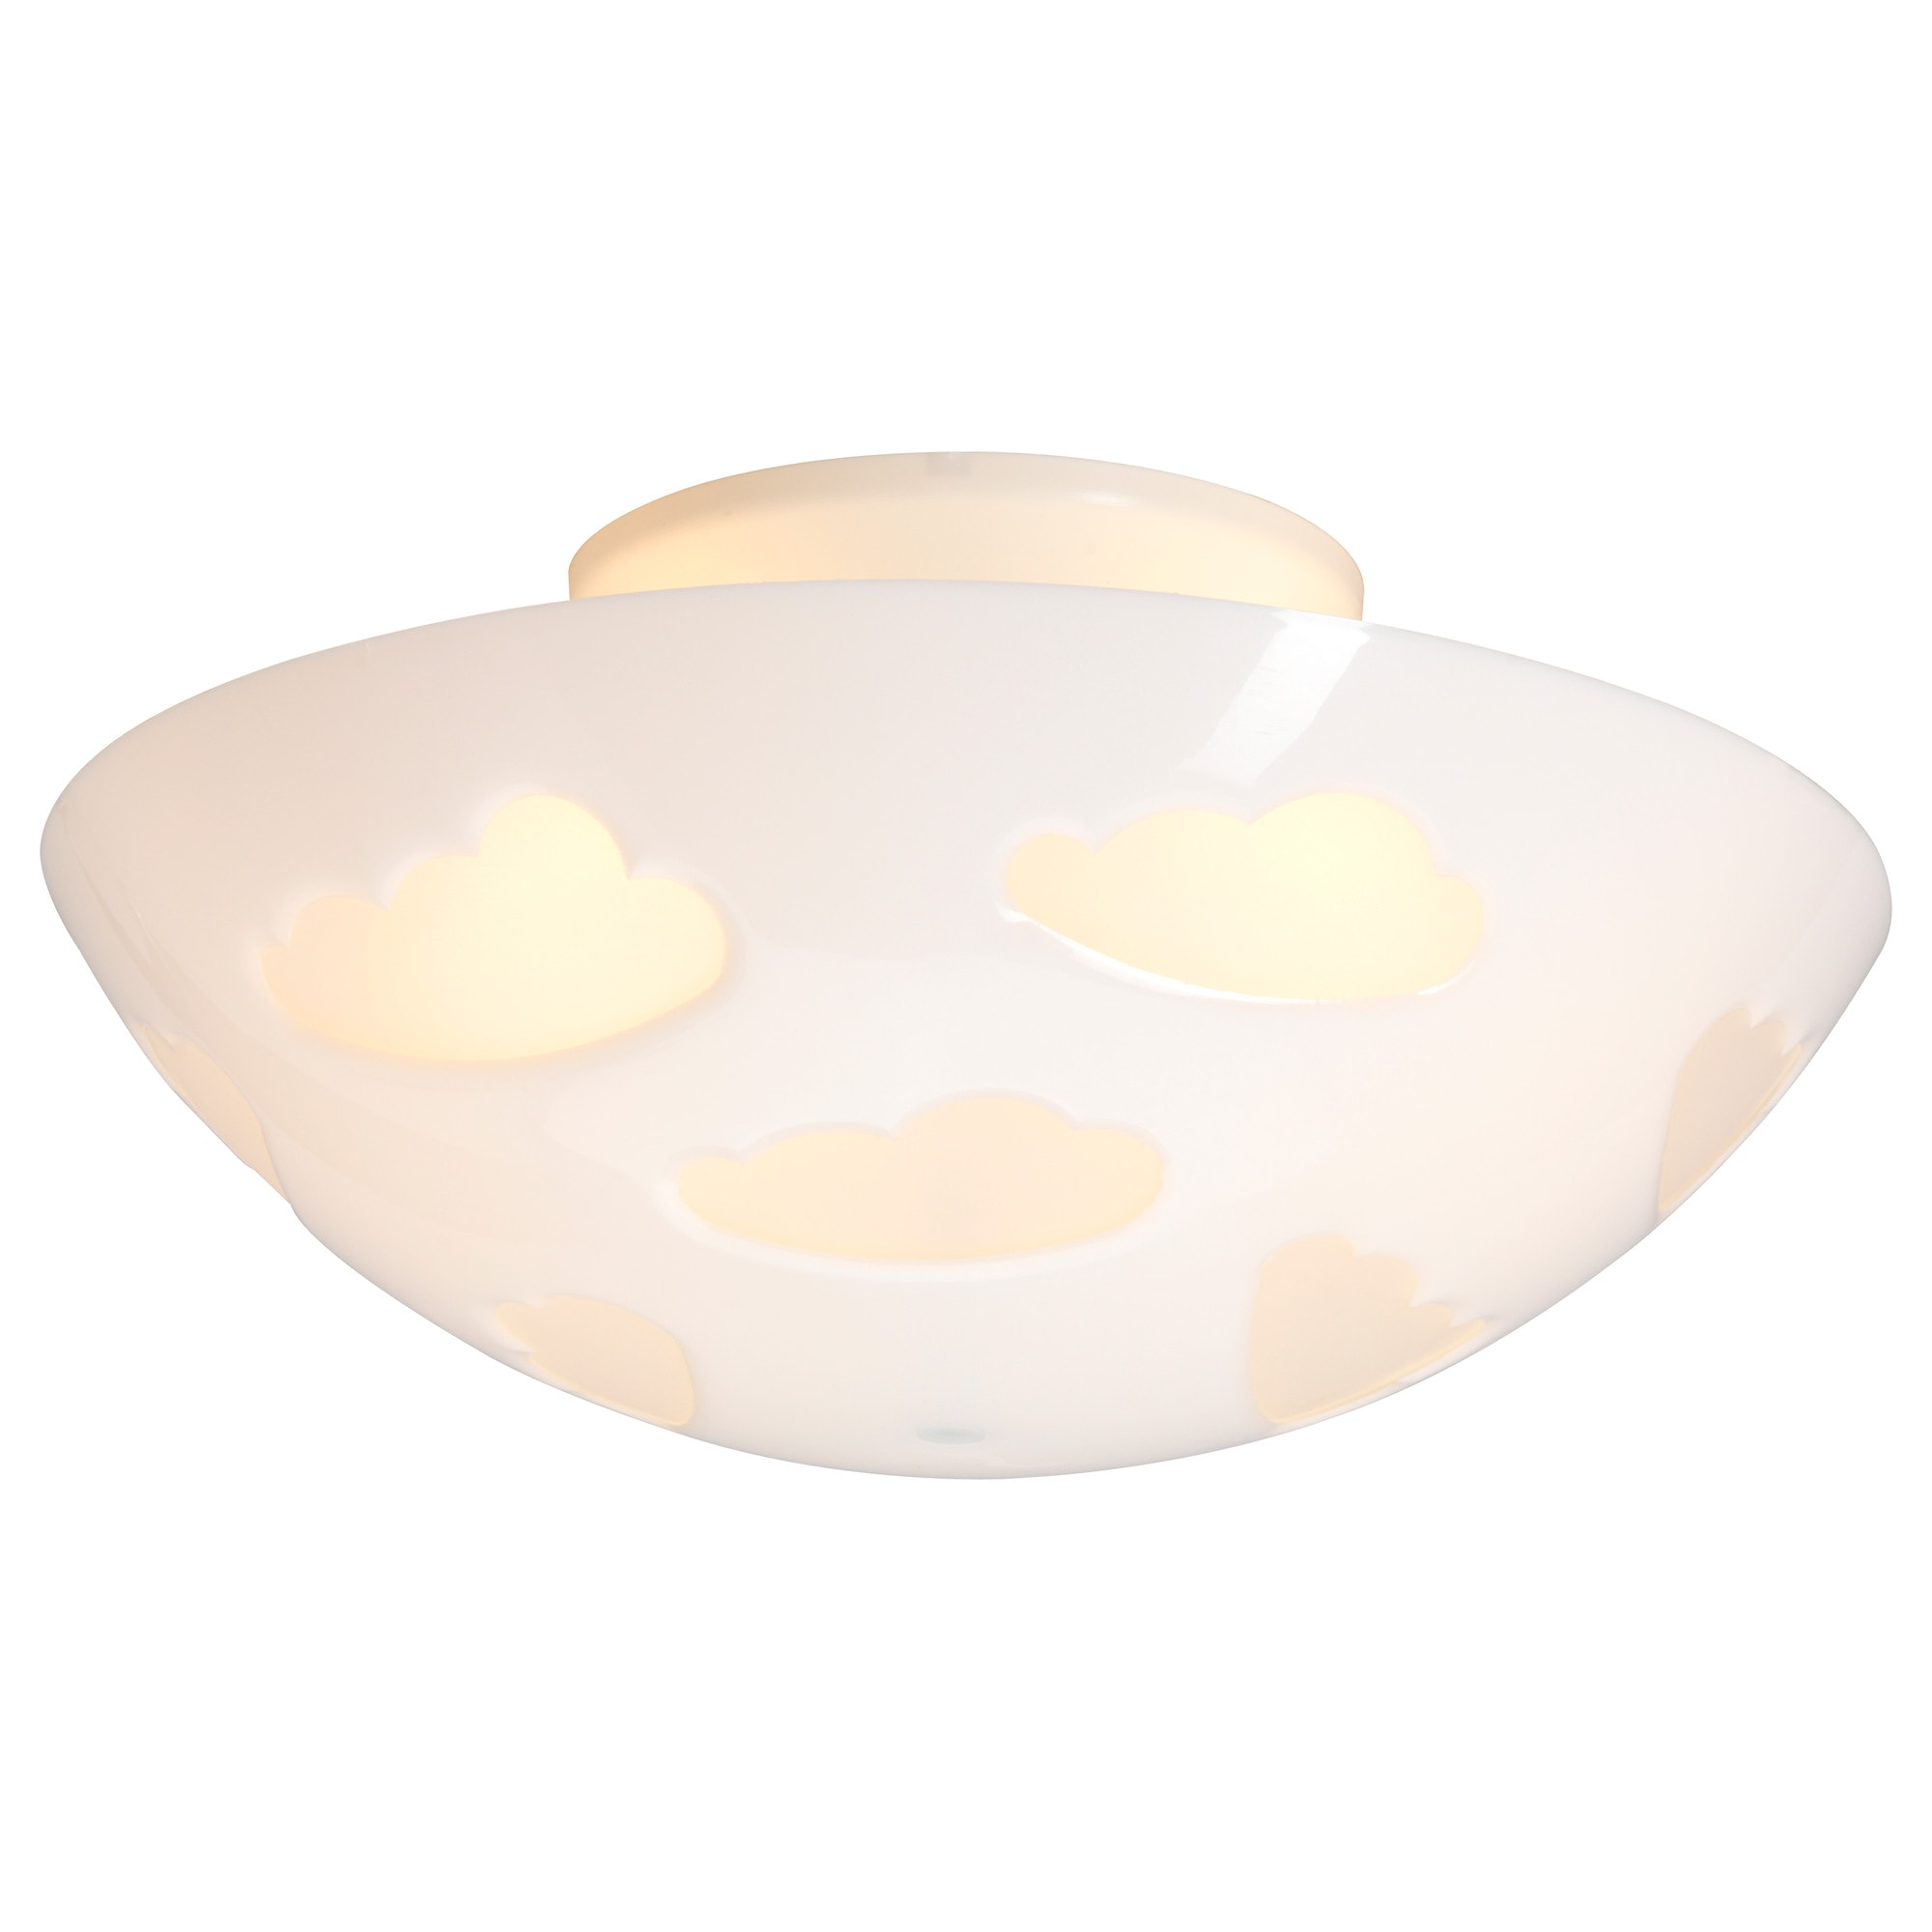 SKOJIG Ceiling Lamp IKEA - Ikea bedroom light fixtures